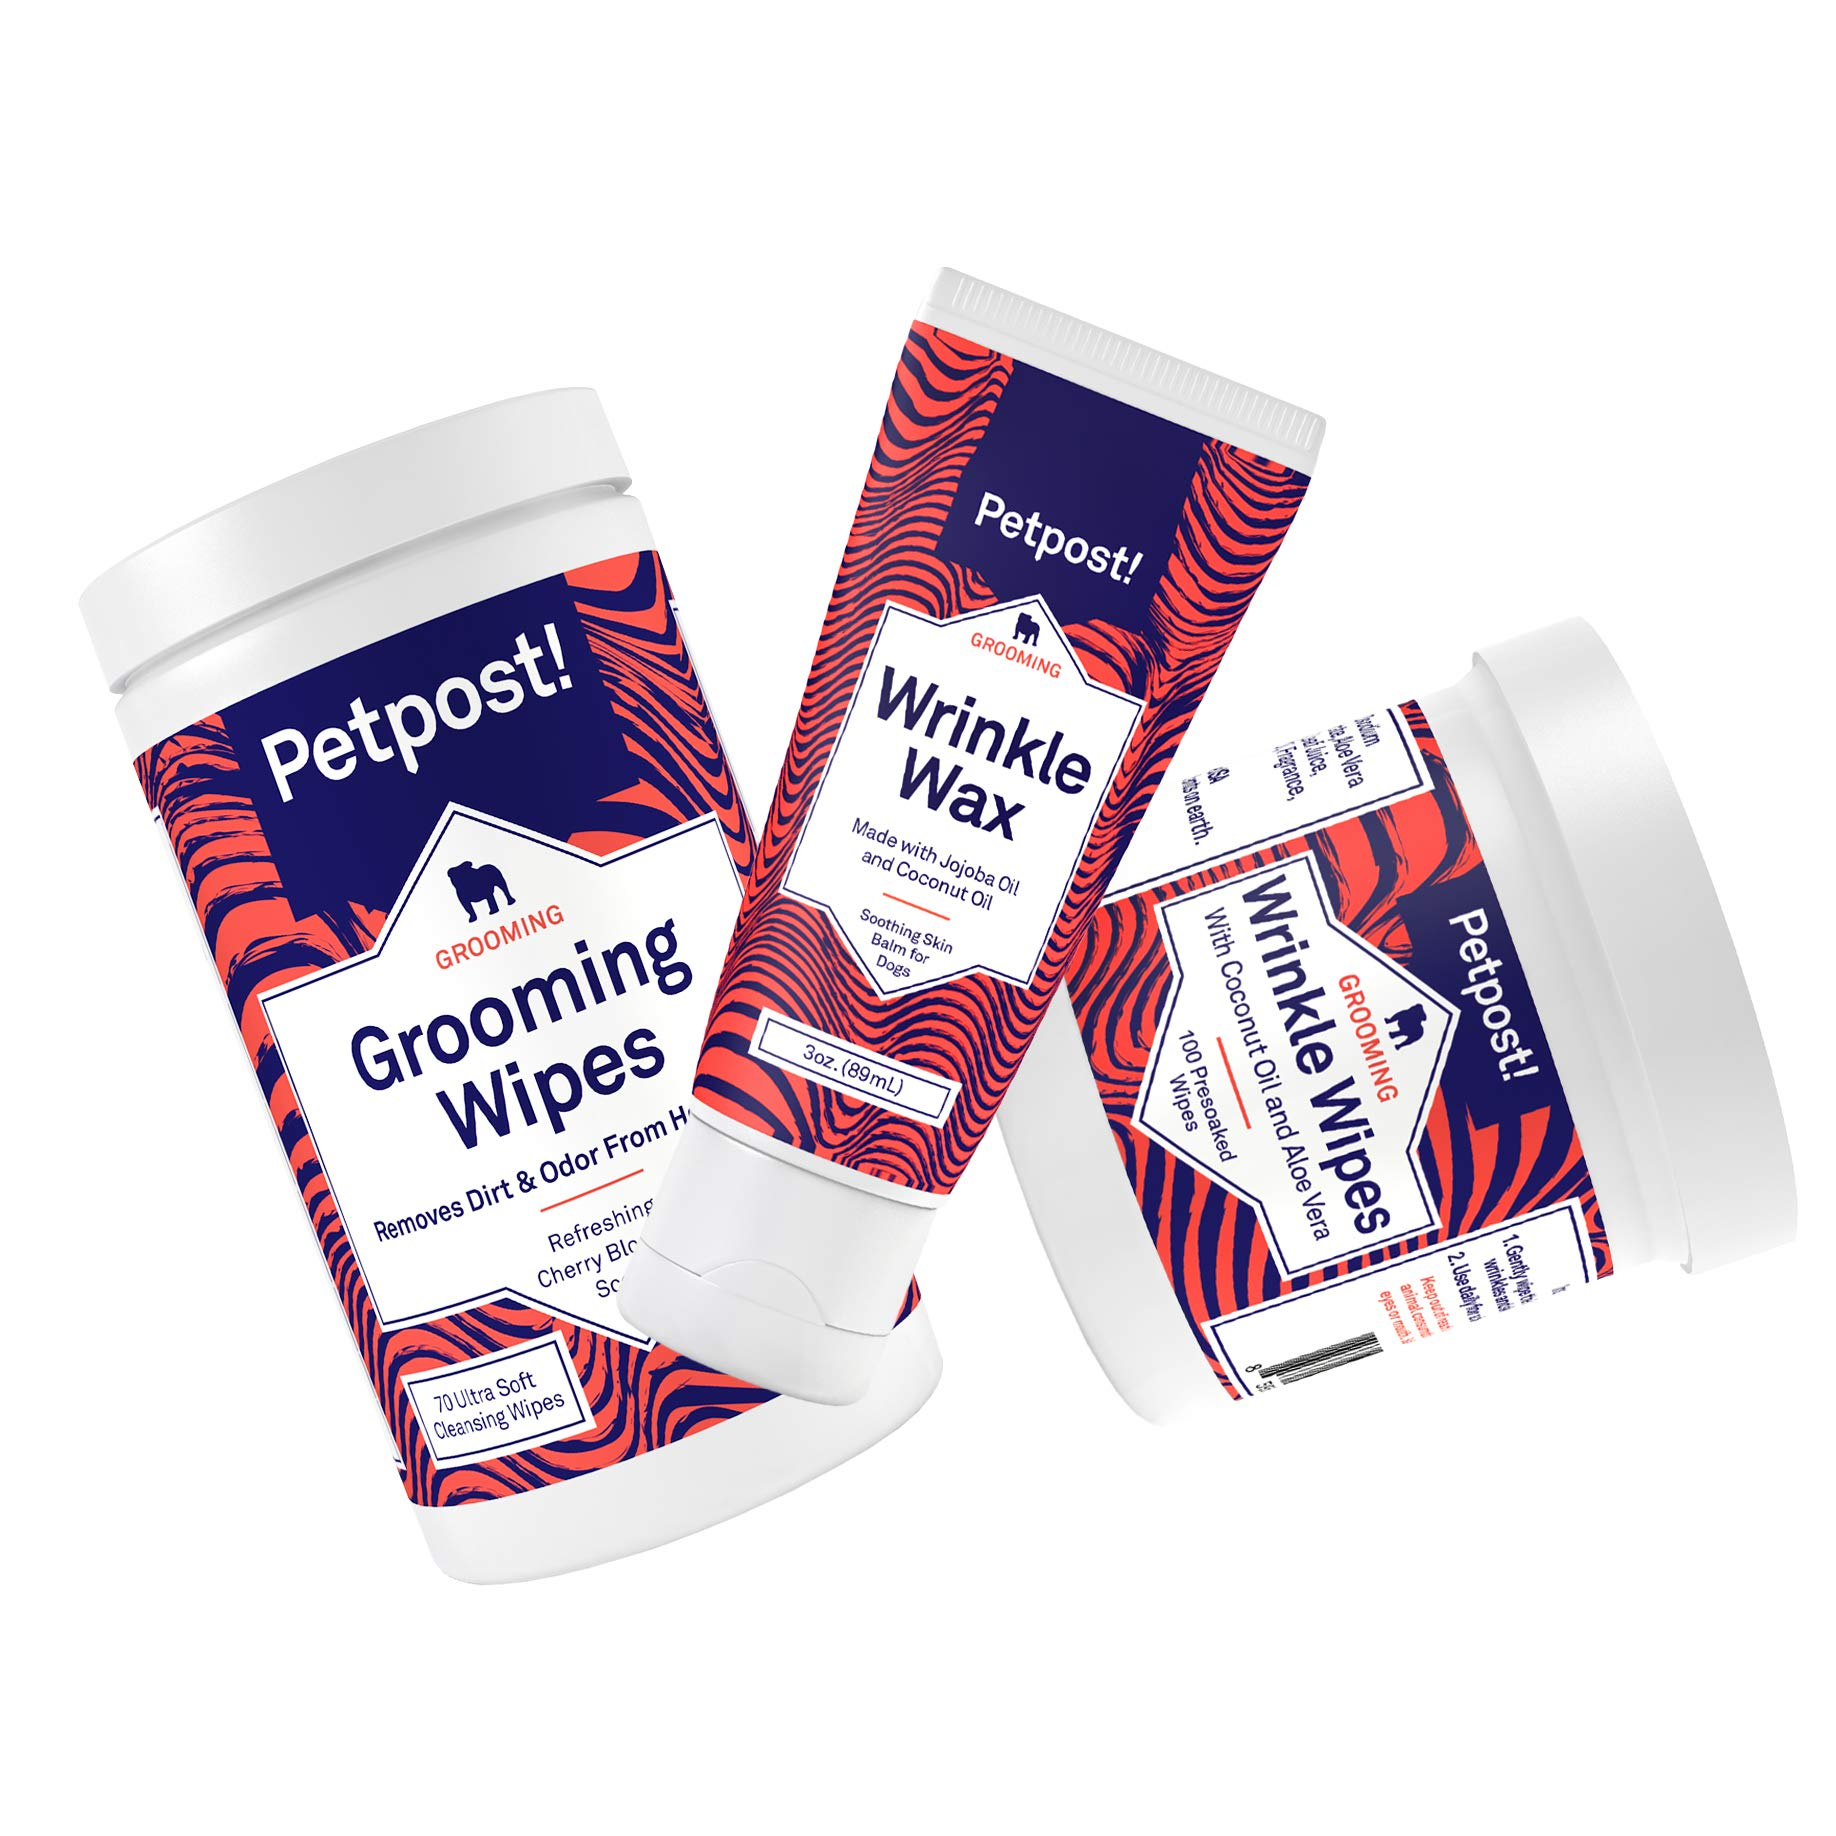 Petpost | Ultimate Bulldog Wrinkle Care Kit with Grooming Wipes - Natural Wrinkle Wax and Wipes Protect Dog Wrinkles and Folds - Soothing Avocado, Jojoba Paste, and Coconut Oil Formulas